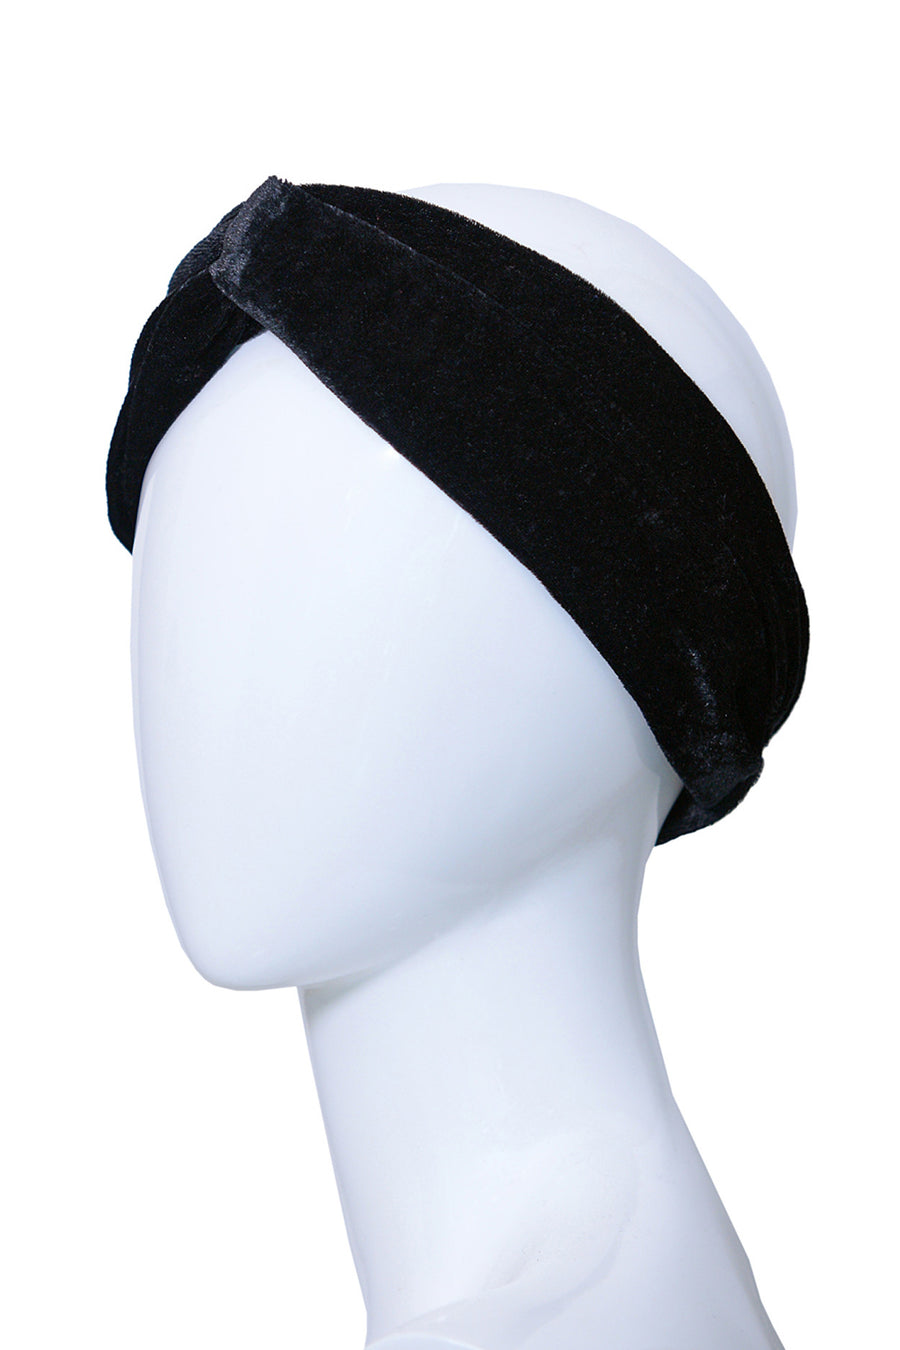 APOLINE Black Crossed Handmade Headband in Velvet